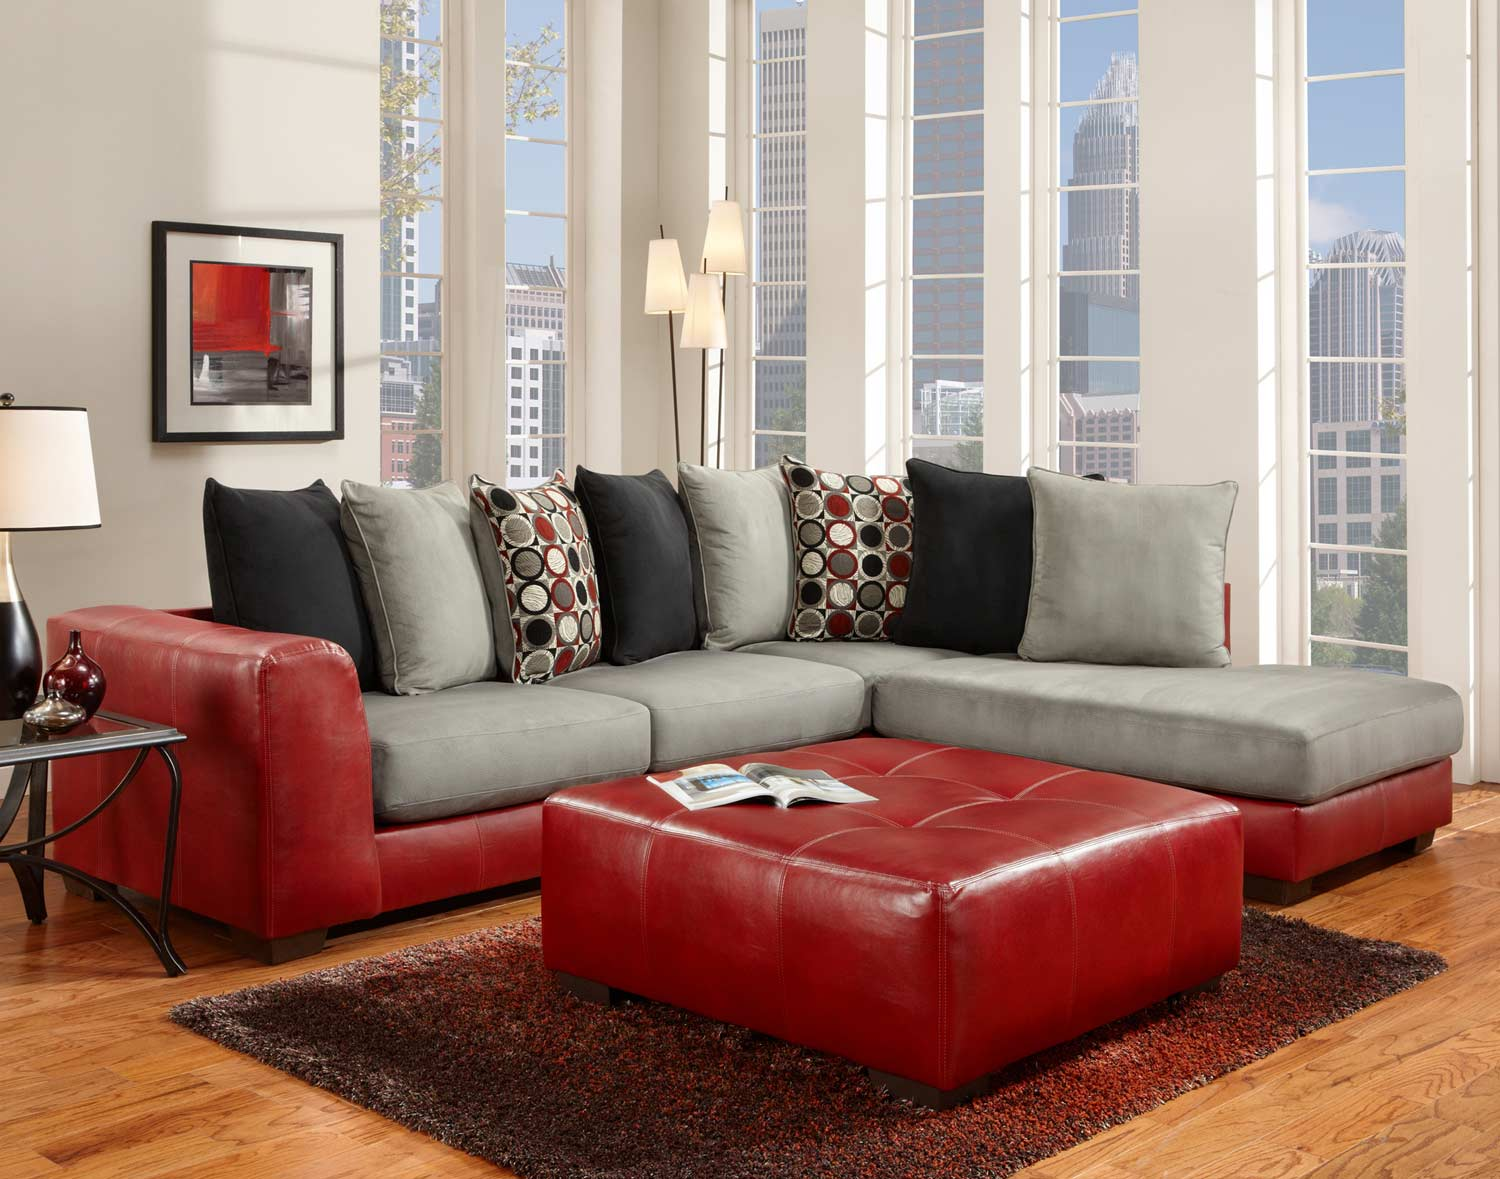 Global Furniture USA 6350 Sectional Sofa Set   Micro Fabric/Bicast    Gray/Red